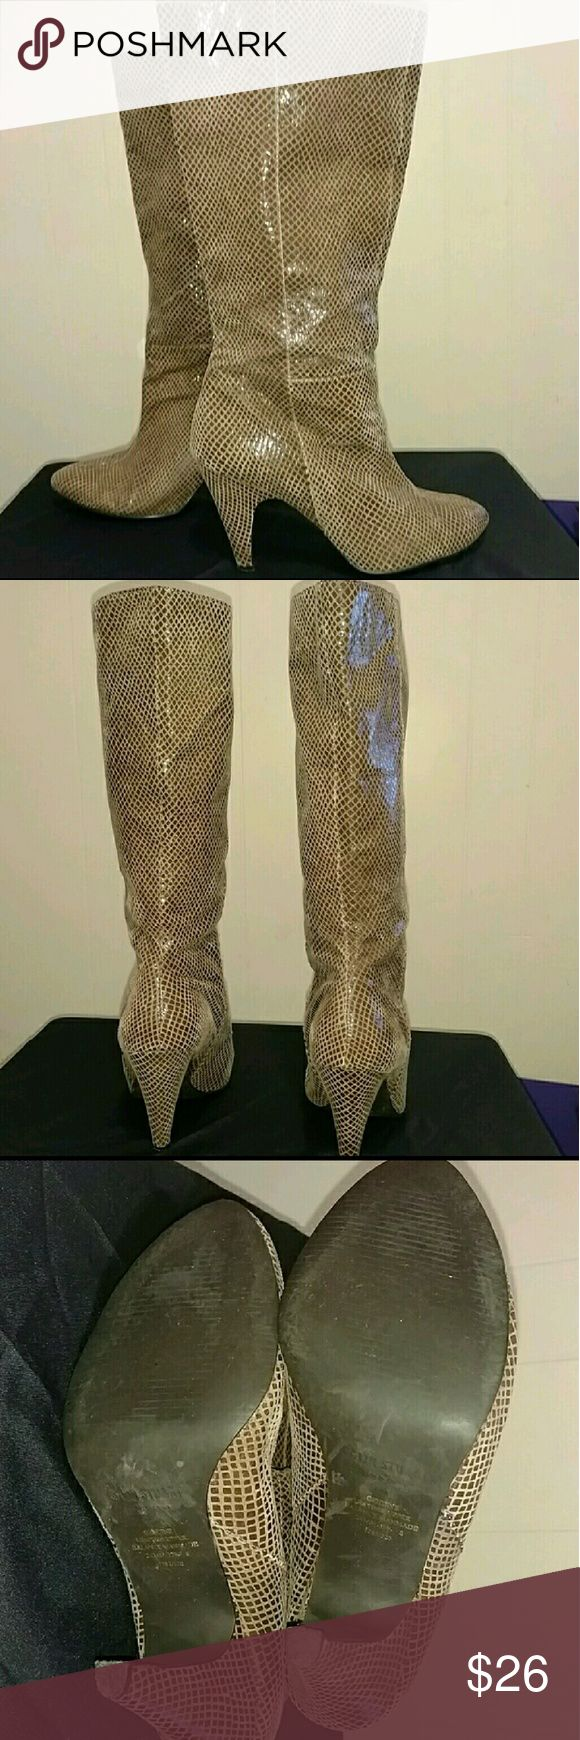 Colin Stuart Brown Leather Animal Print Boots Genuine Leather animal print boots In excellent used condition. Beautiful boots with lots of life left. No box.  Calf circumference is 15 inches, they give but aren't  stretchy material, no zipper.  Approximately 3.5 inch heel. Colin Stuart Shoes Ankle Boots & Booties